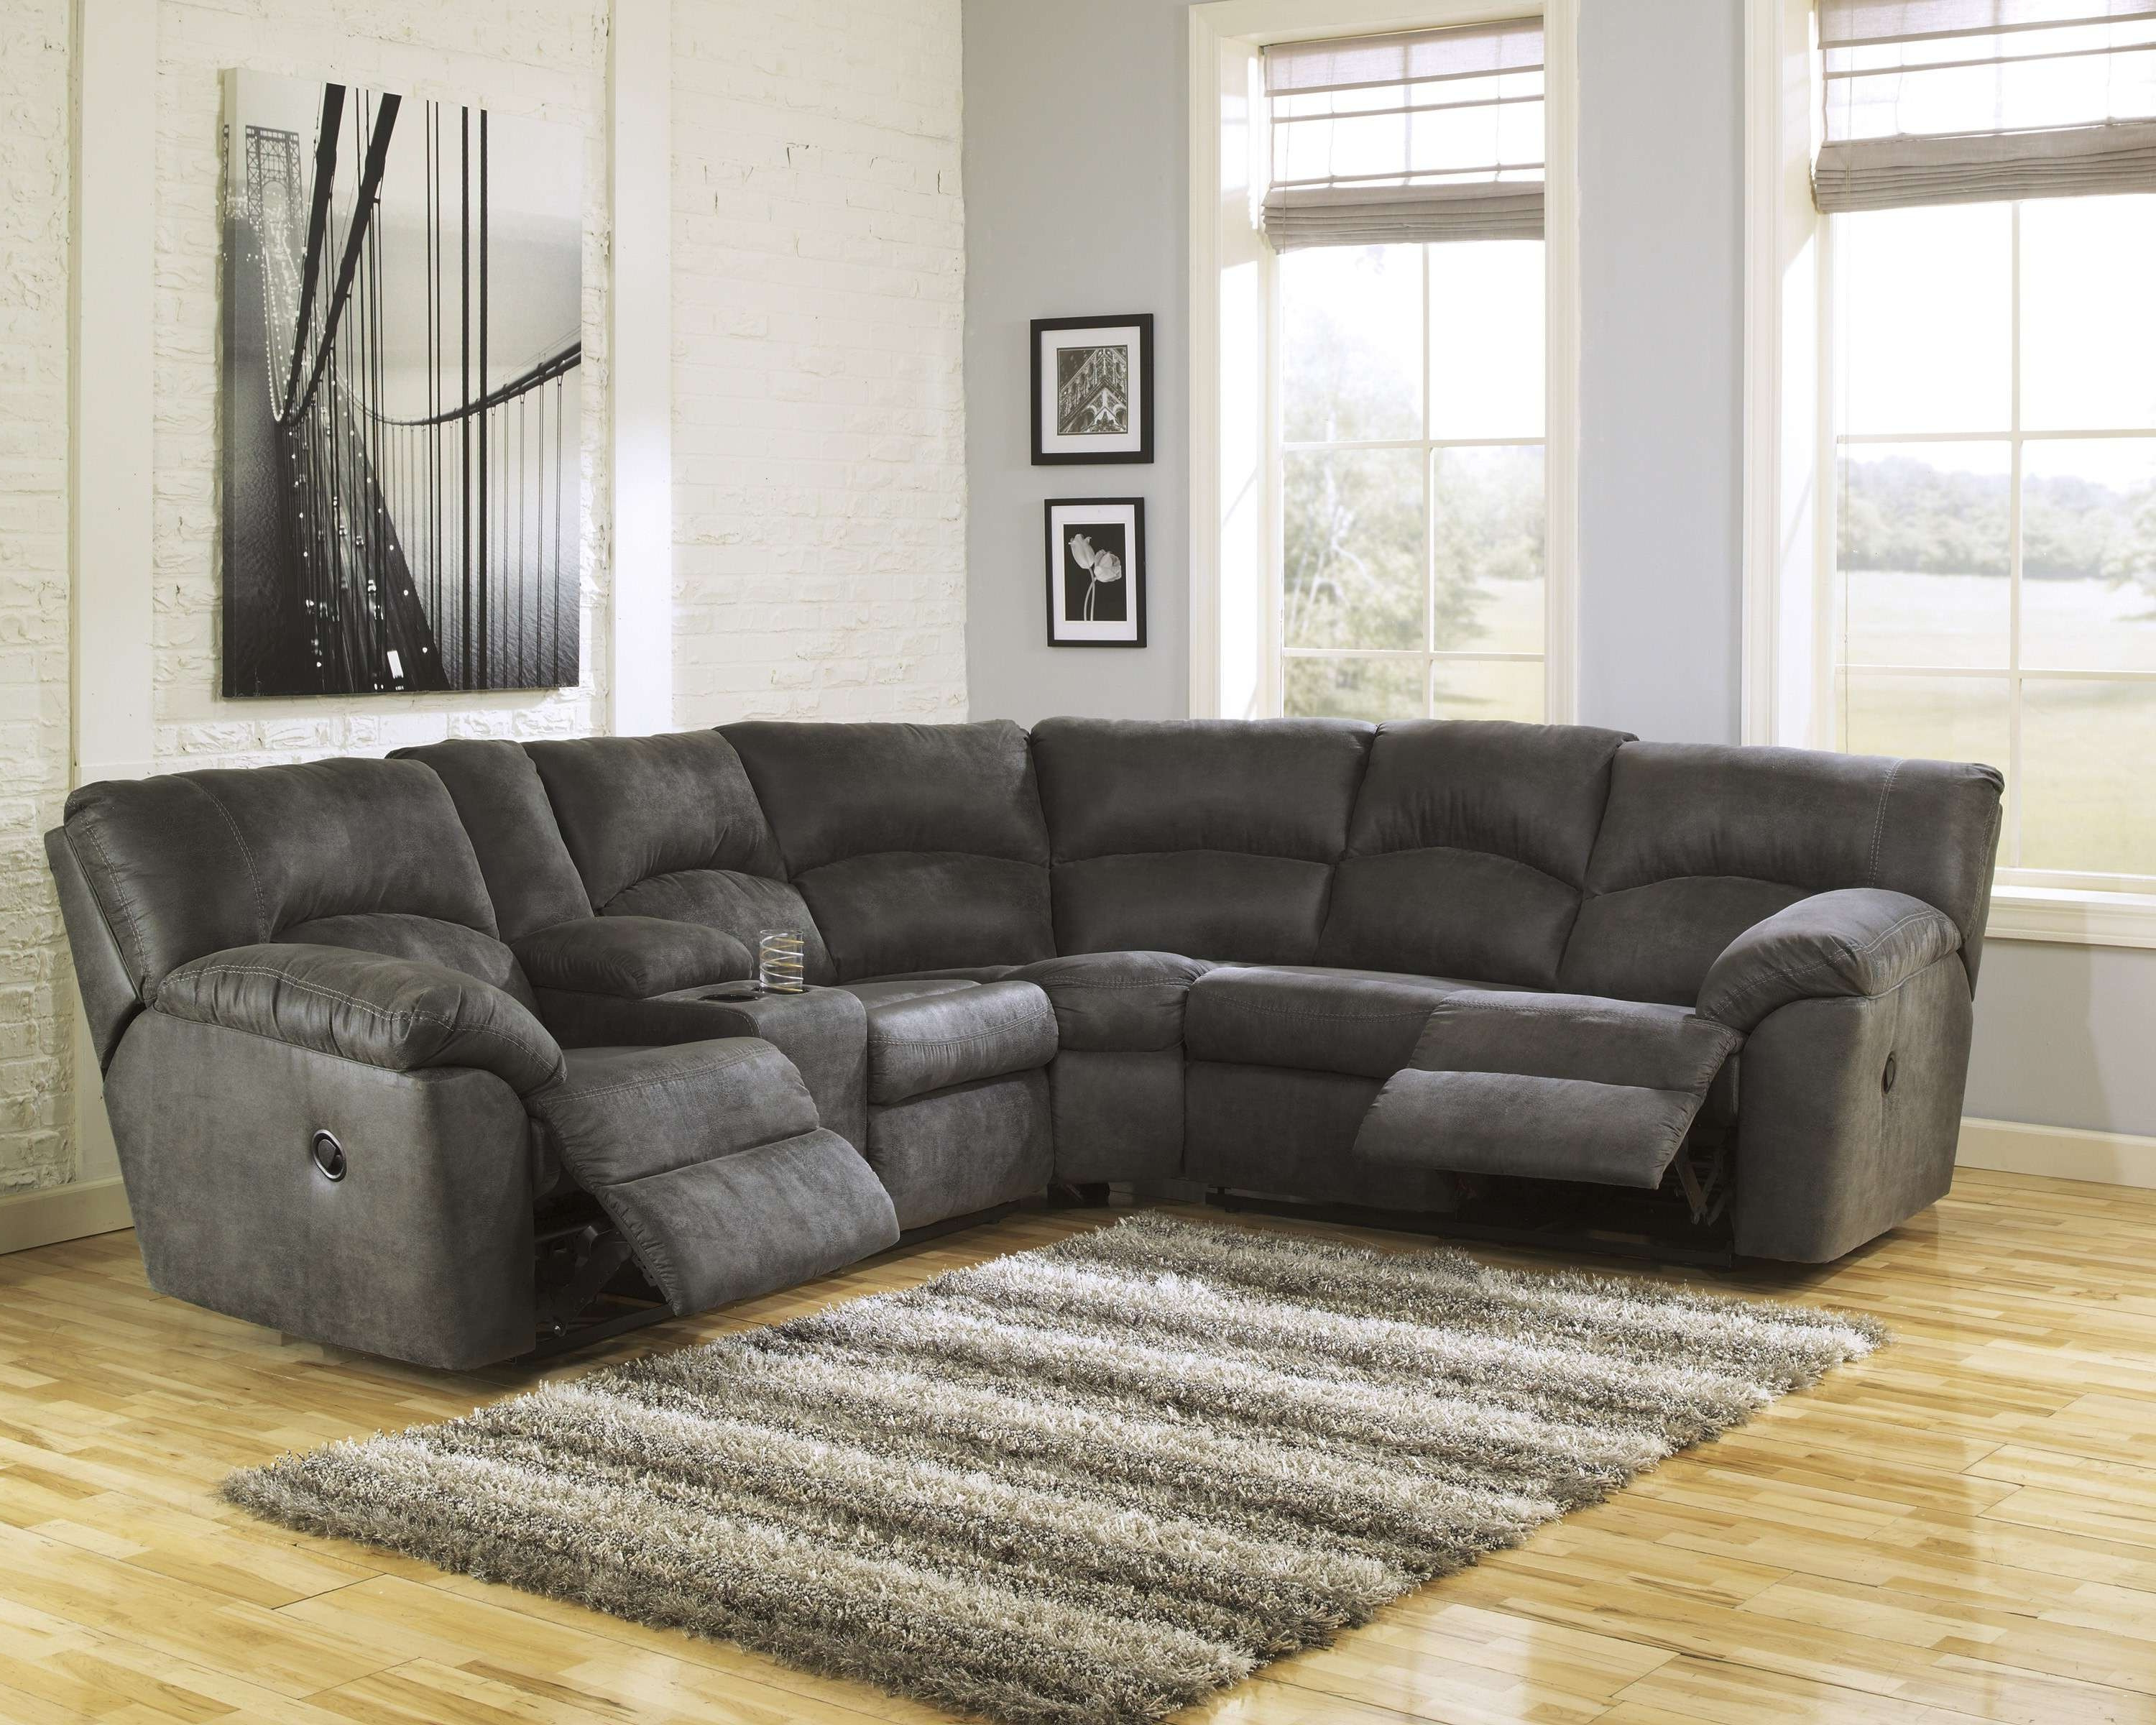 Popular Dark Grey Sectional – Tidex Inside Lucy Grey 2 Piece Sectionals With Raf Chaise (View 17 of 20)